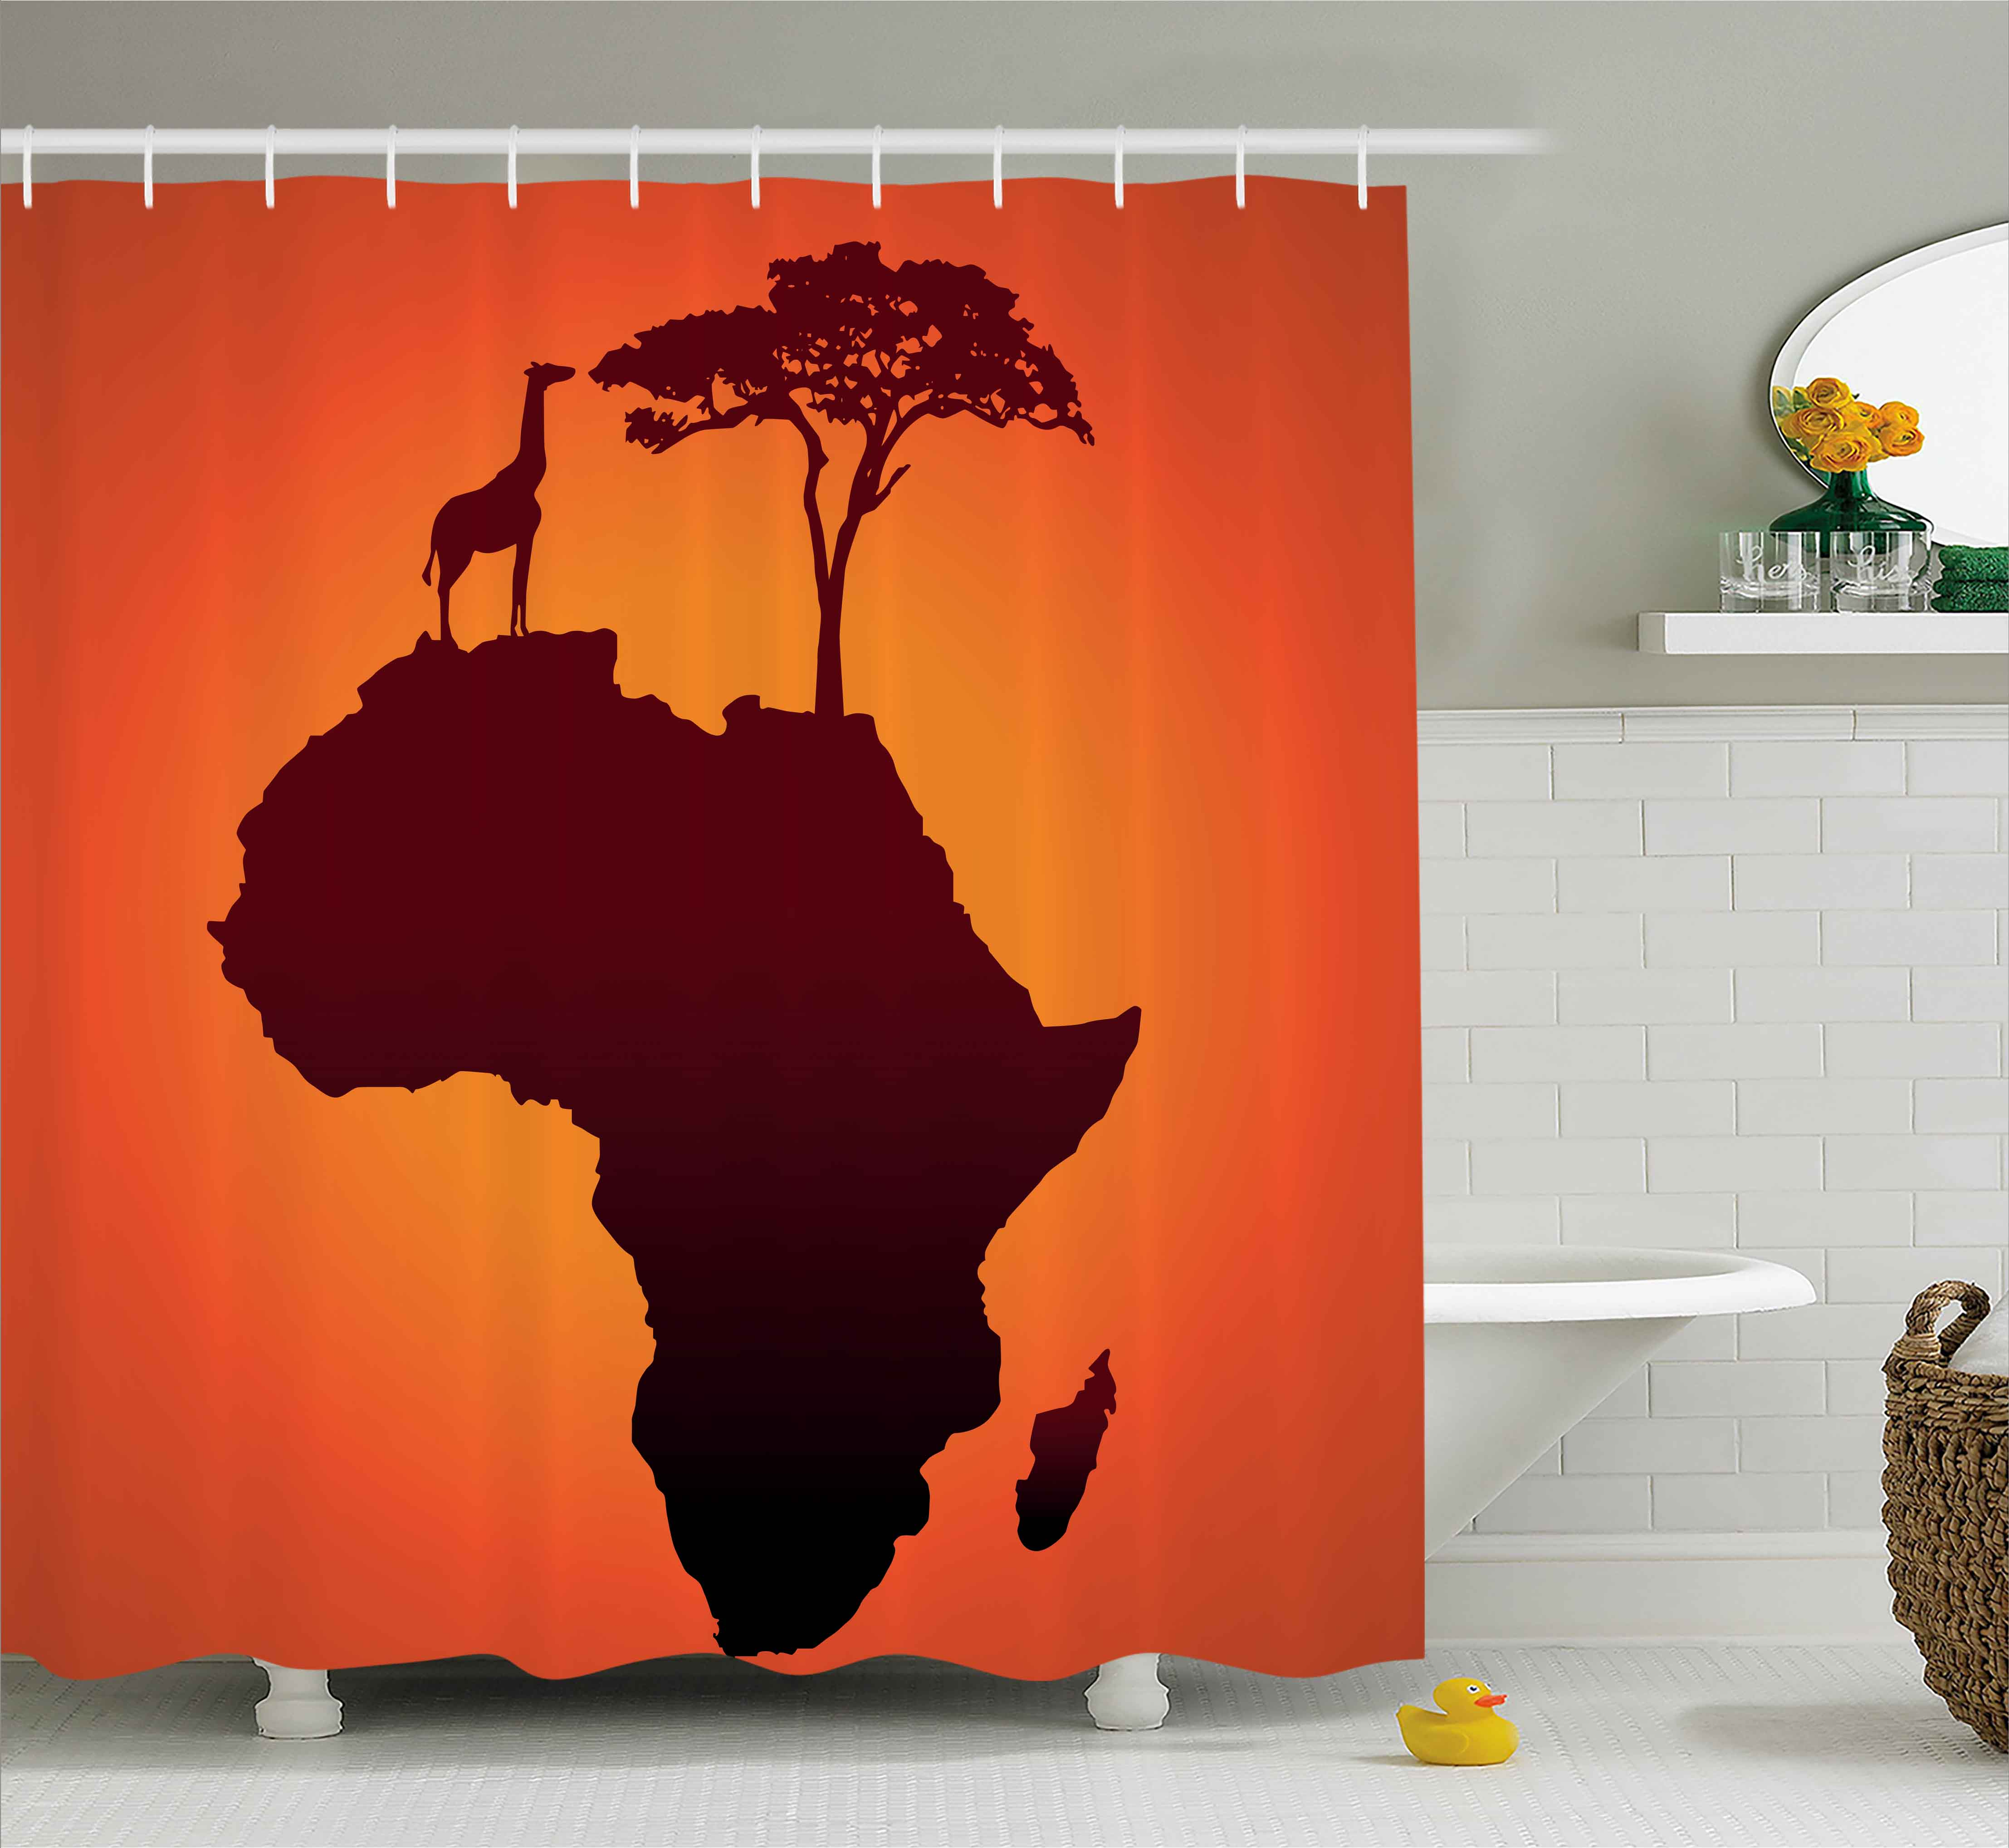 African Decor Shower Curtain, Safari Map with Continent G...